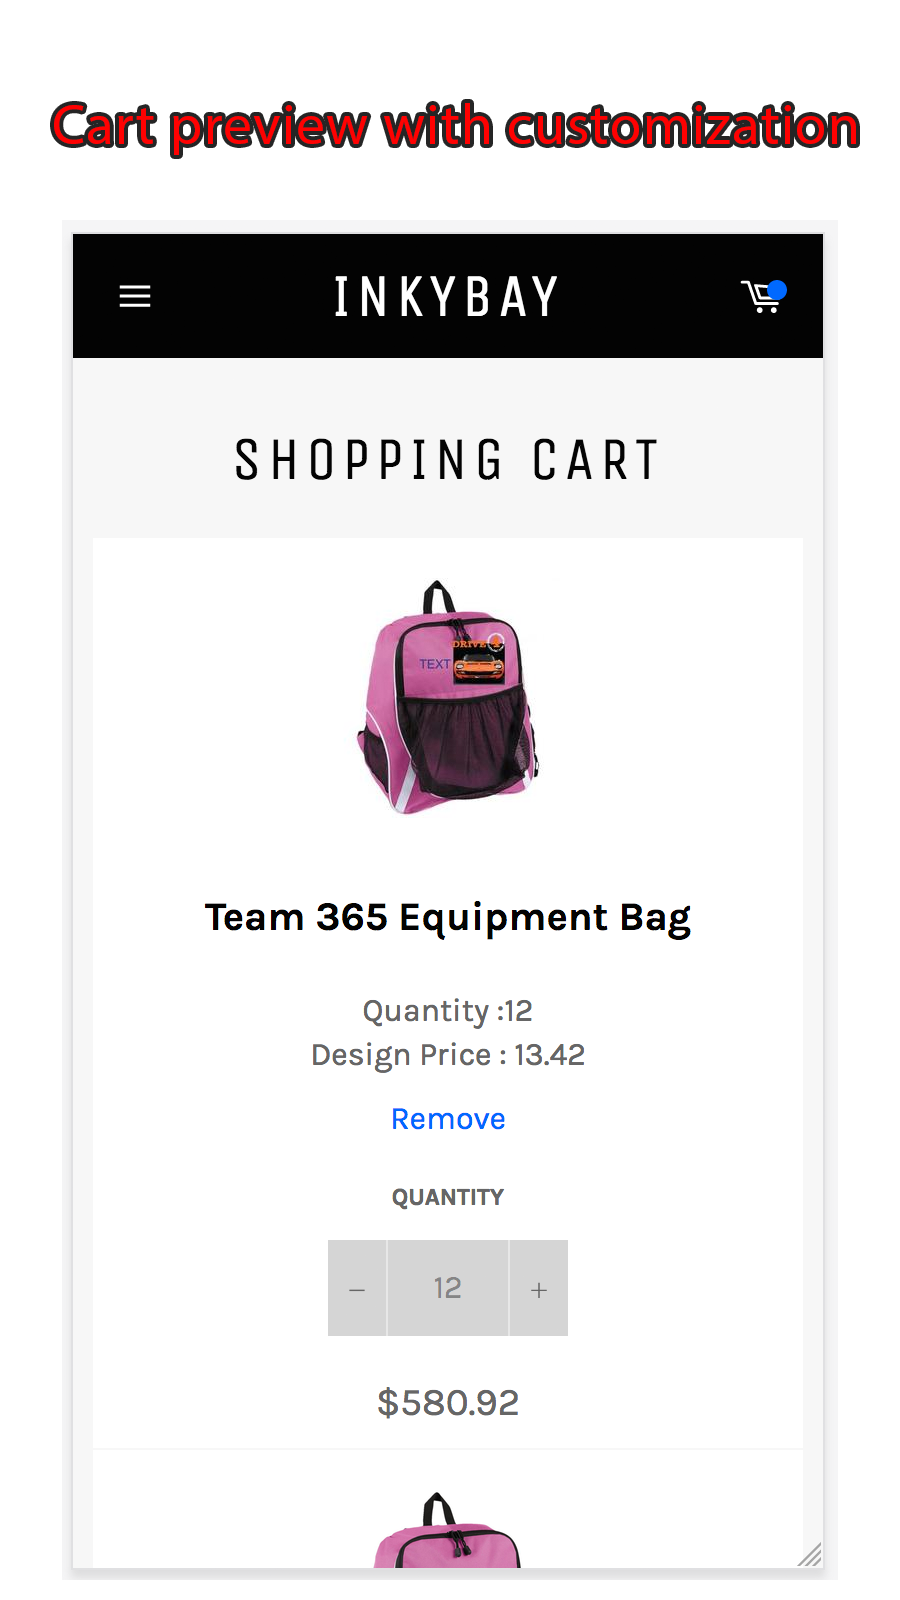 Shopping cart preview with customization